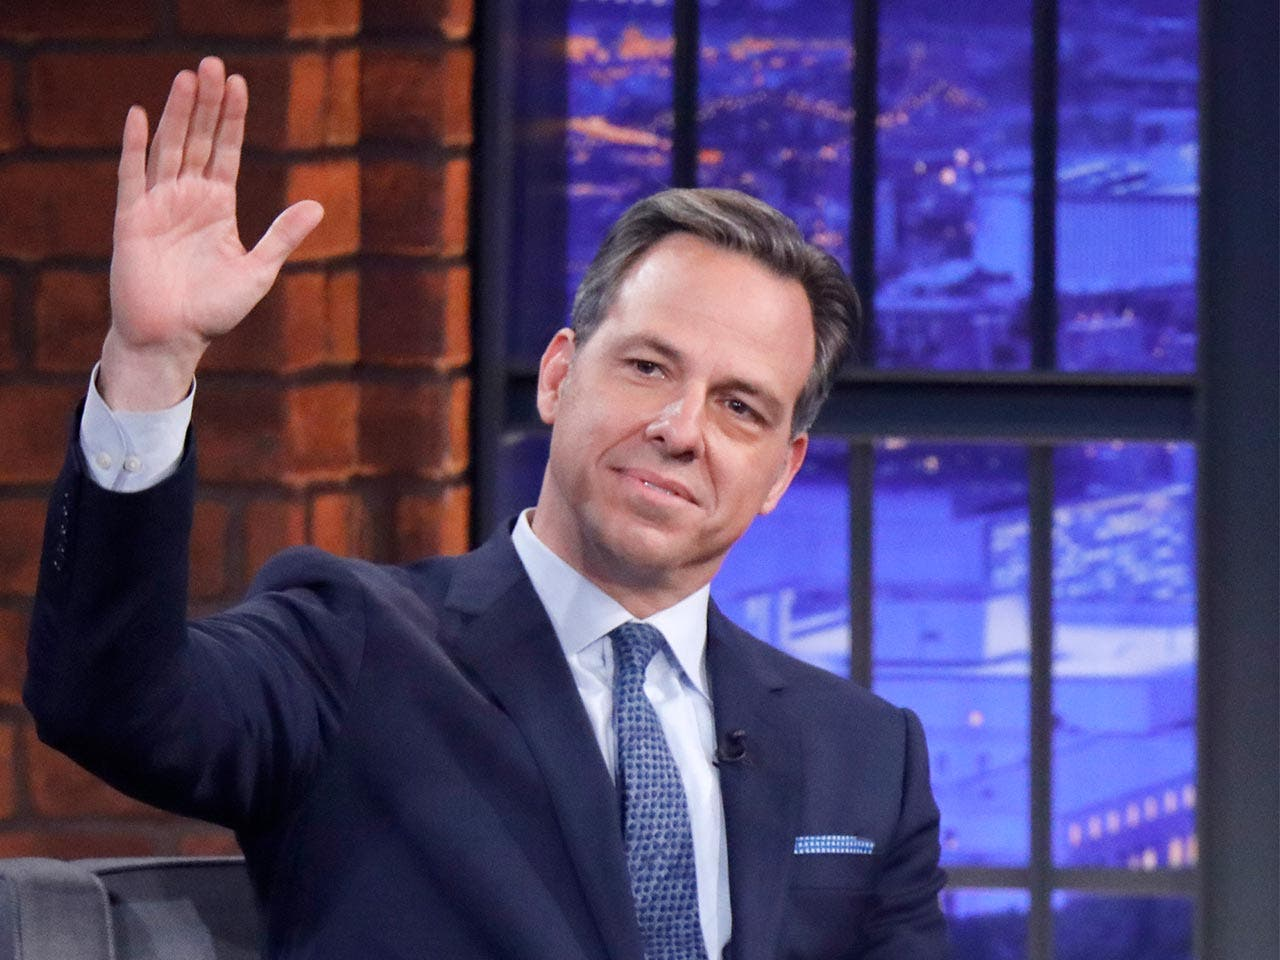 Jake Tapper | NBC/Getty Images